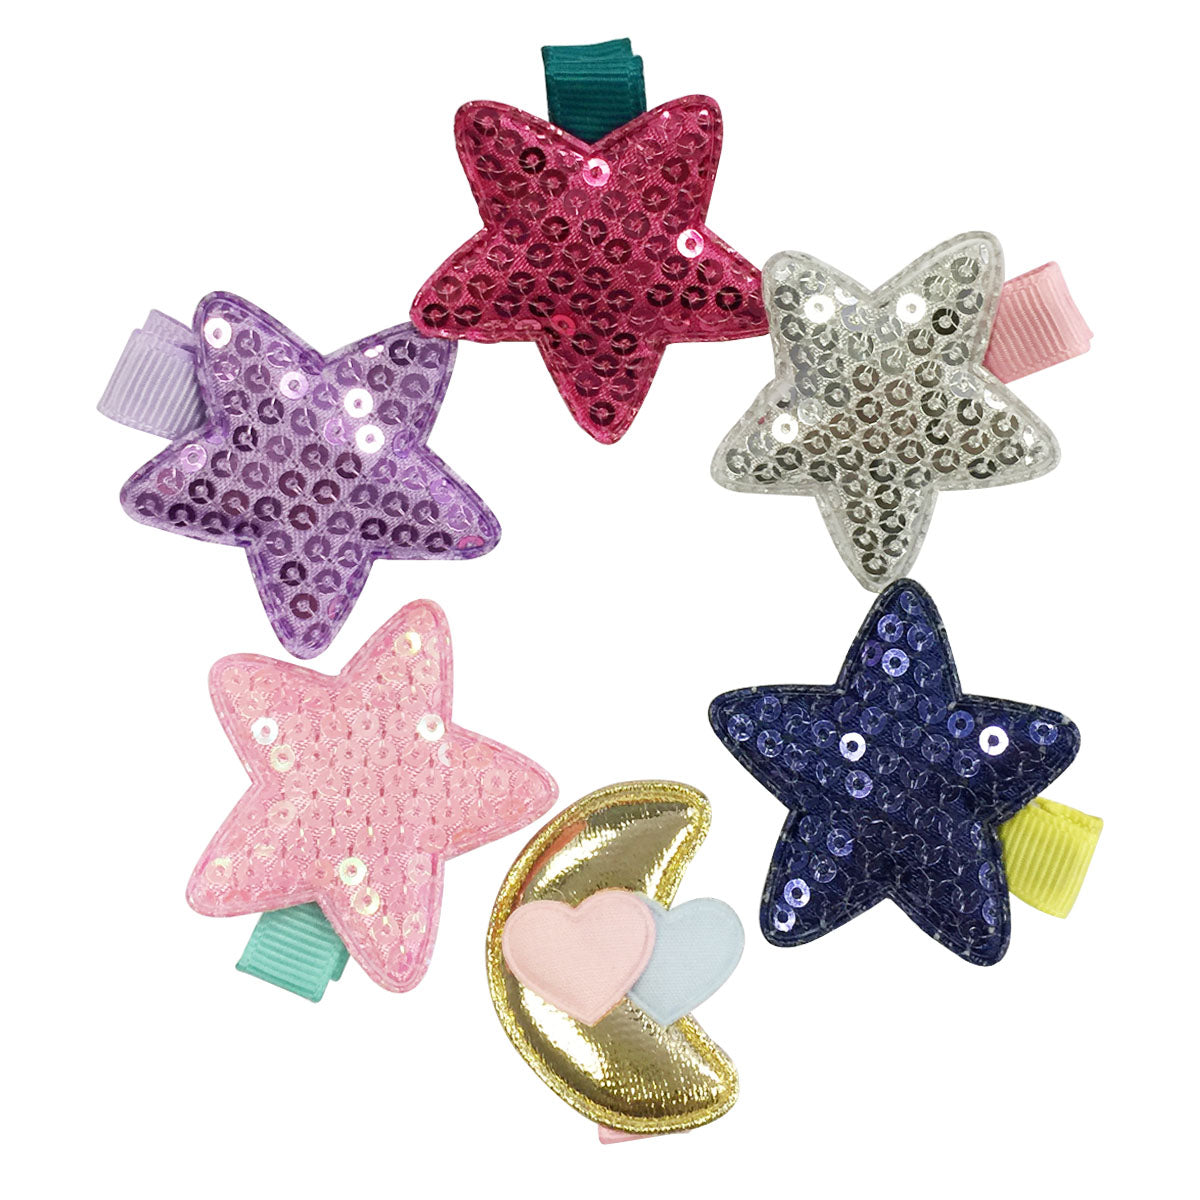 Wrapables Dress up Sparkling Evening Hair Clips, Set of 6